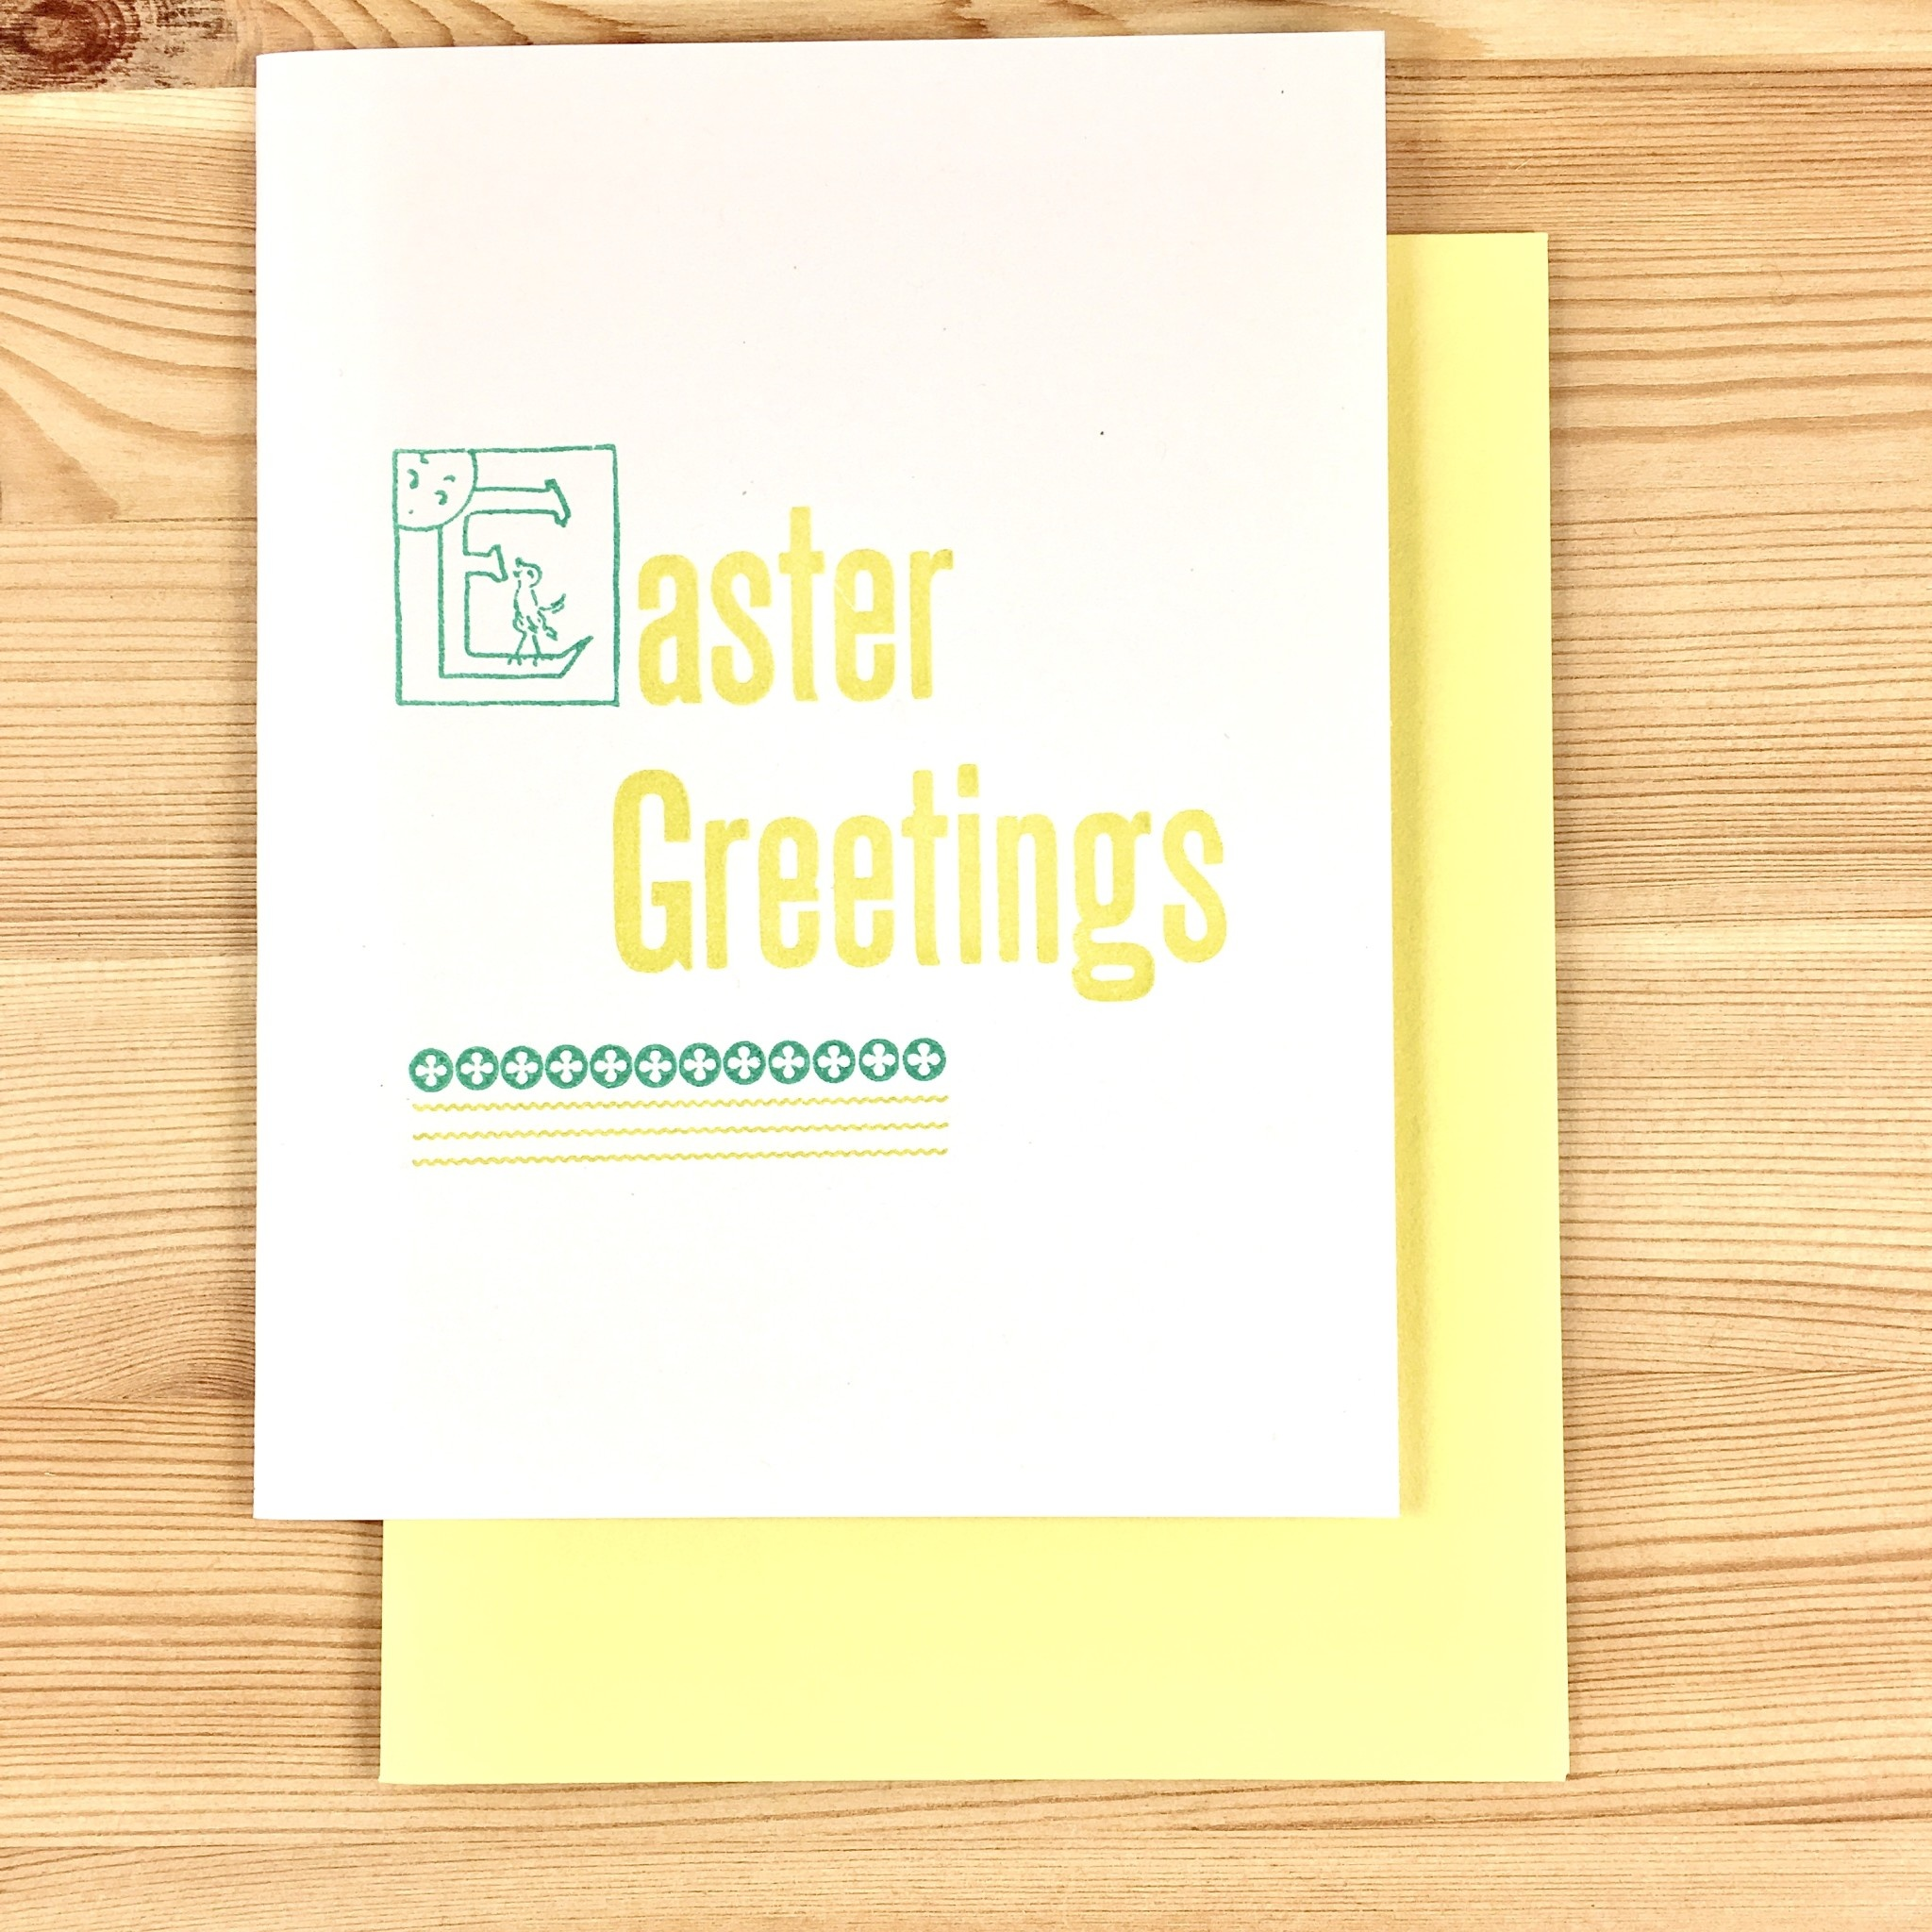 Iron Leaf Press Easter Greetings Greeting Card